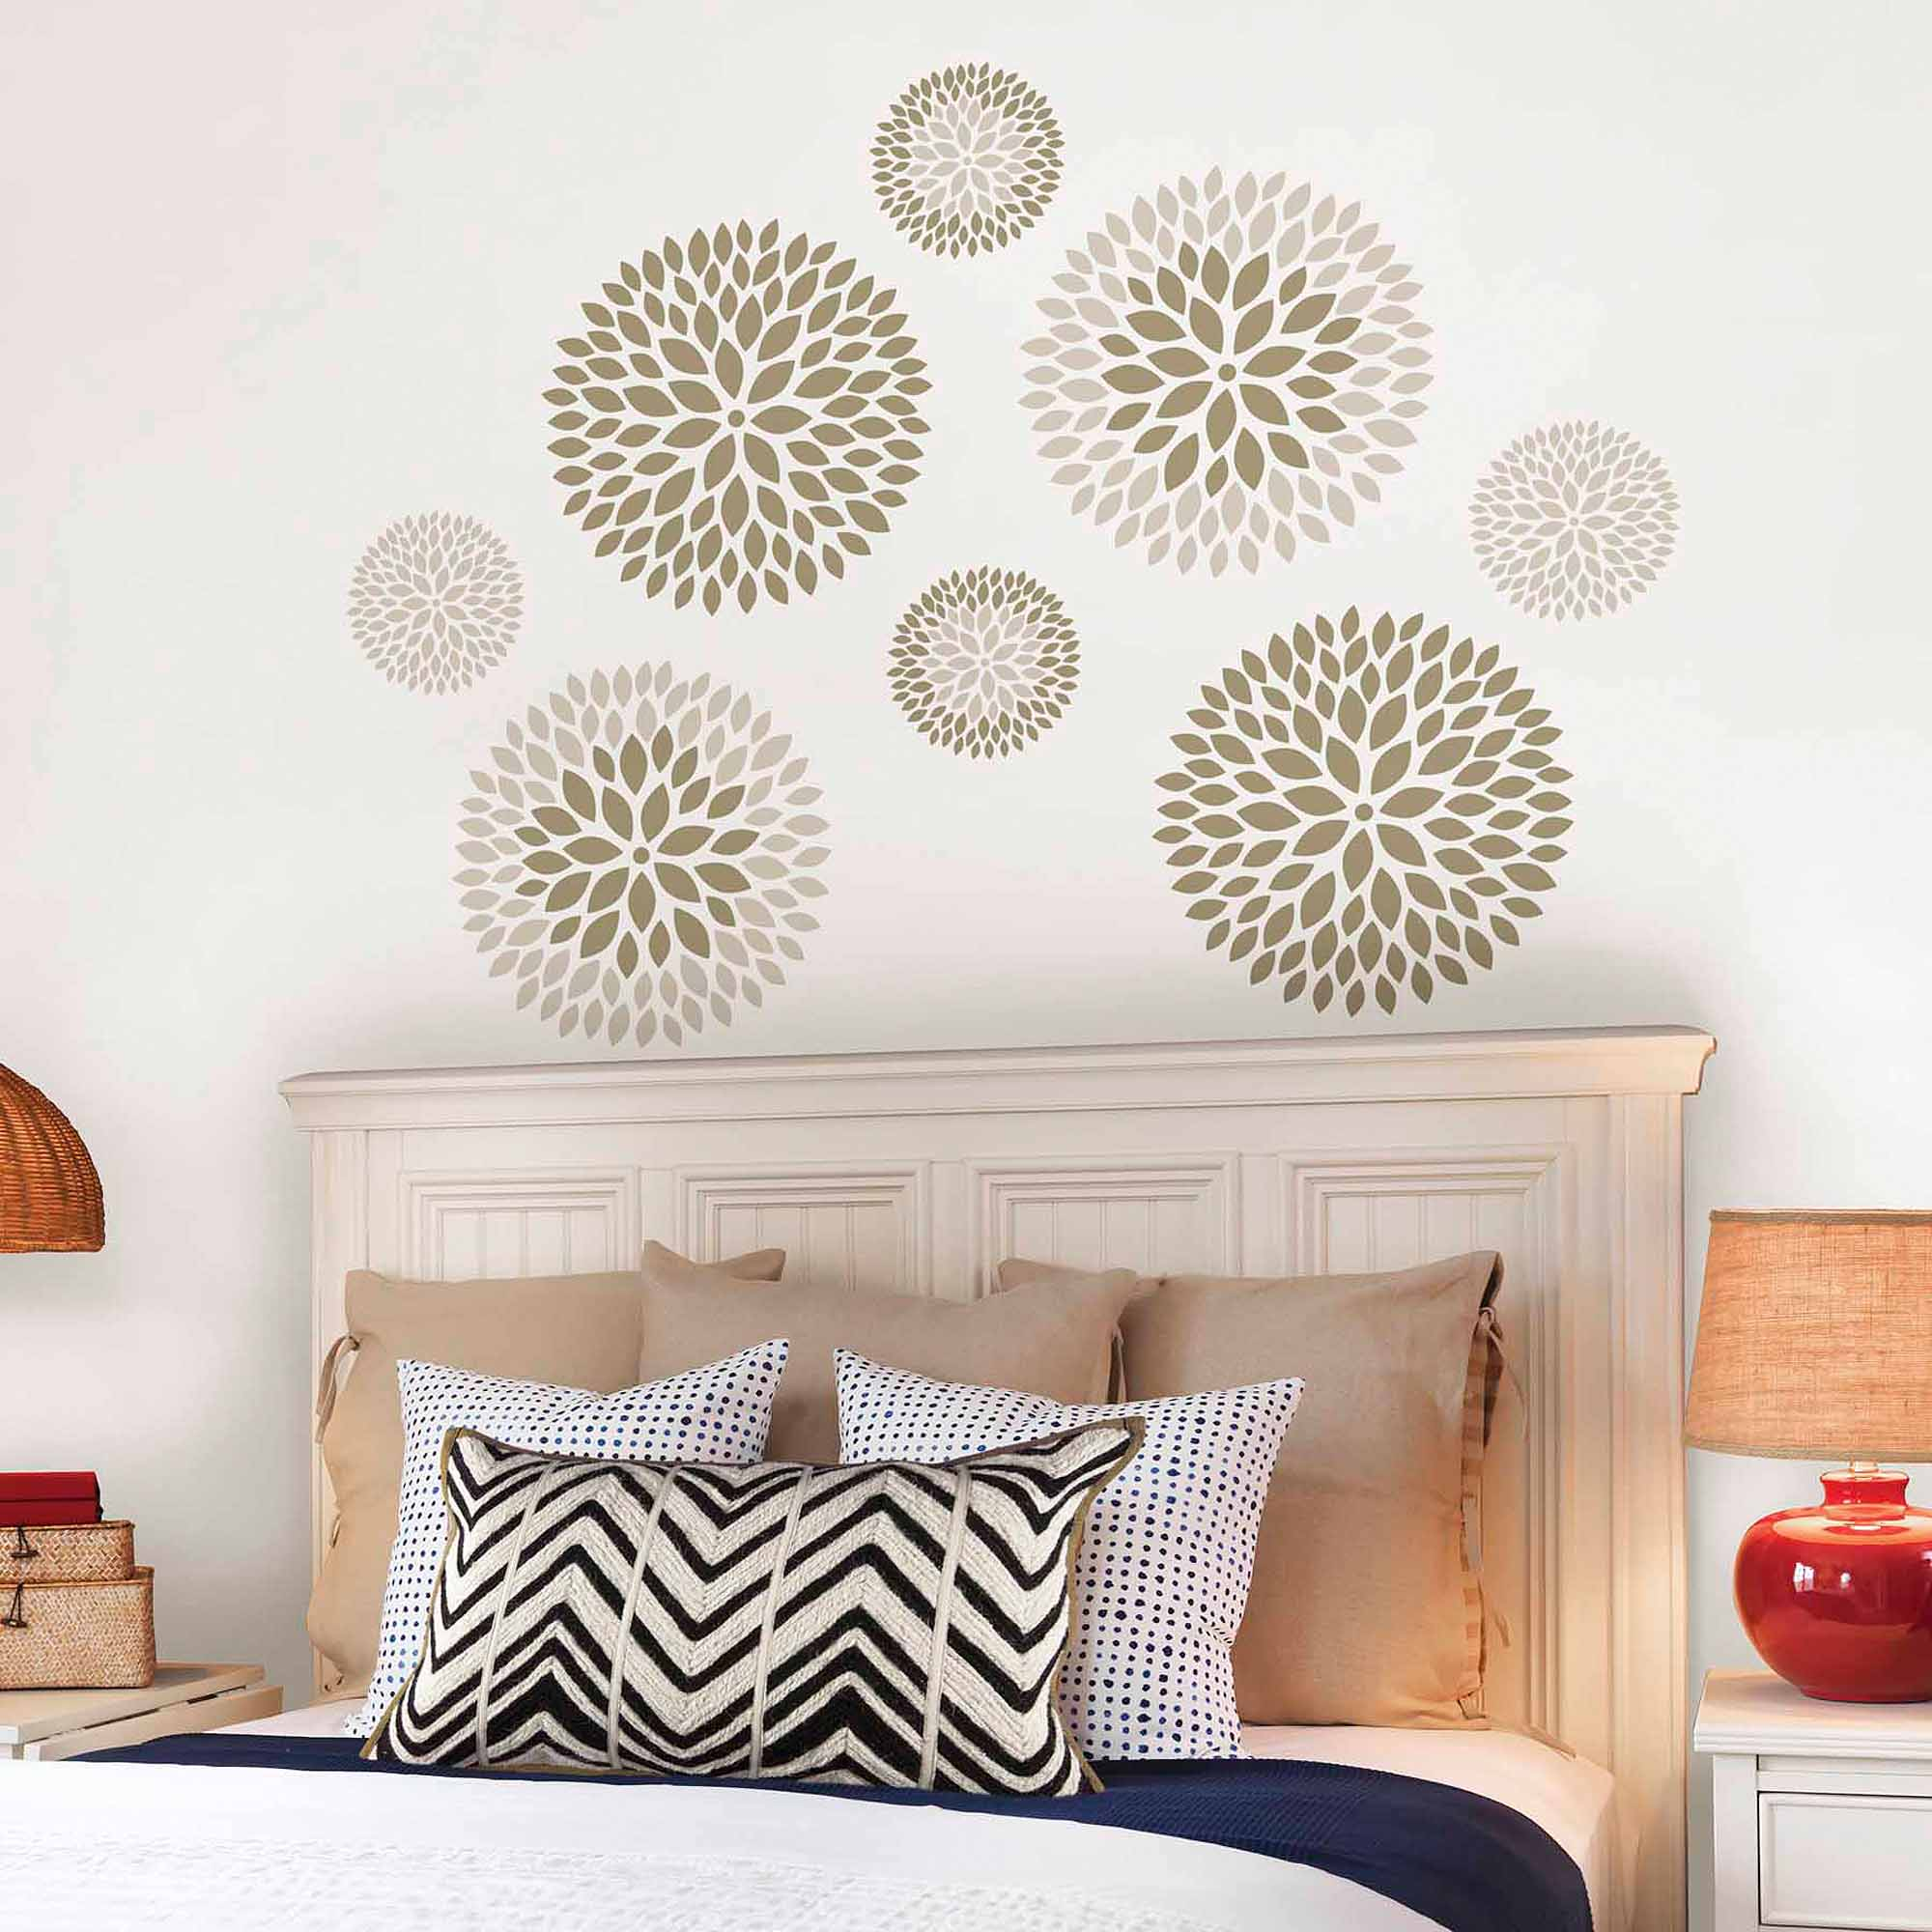 WallPops Chrysanthemum Wall Art Decals Kit   Walmart.com